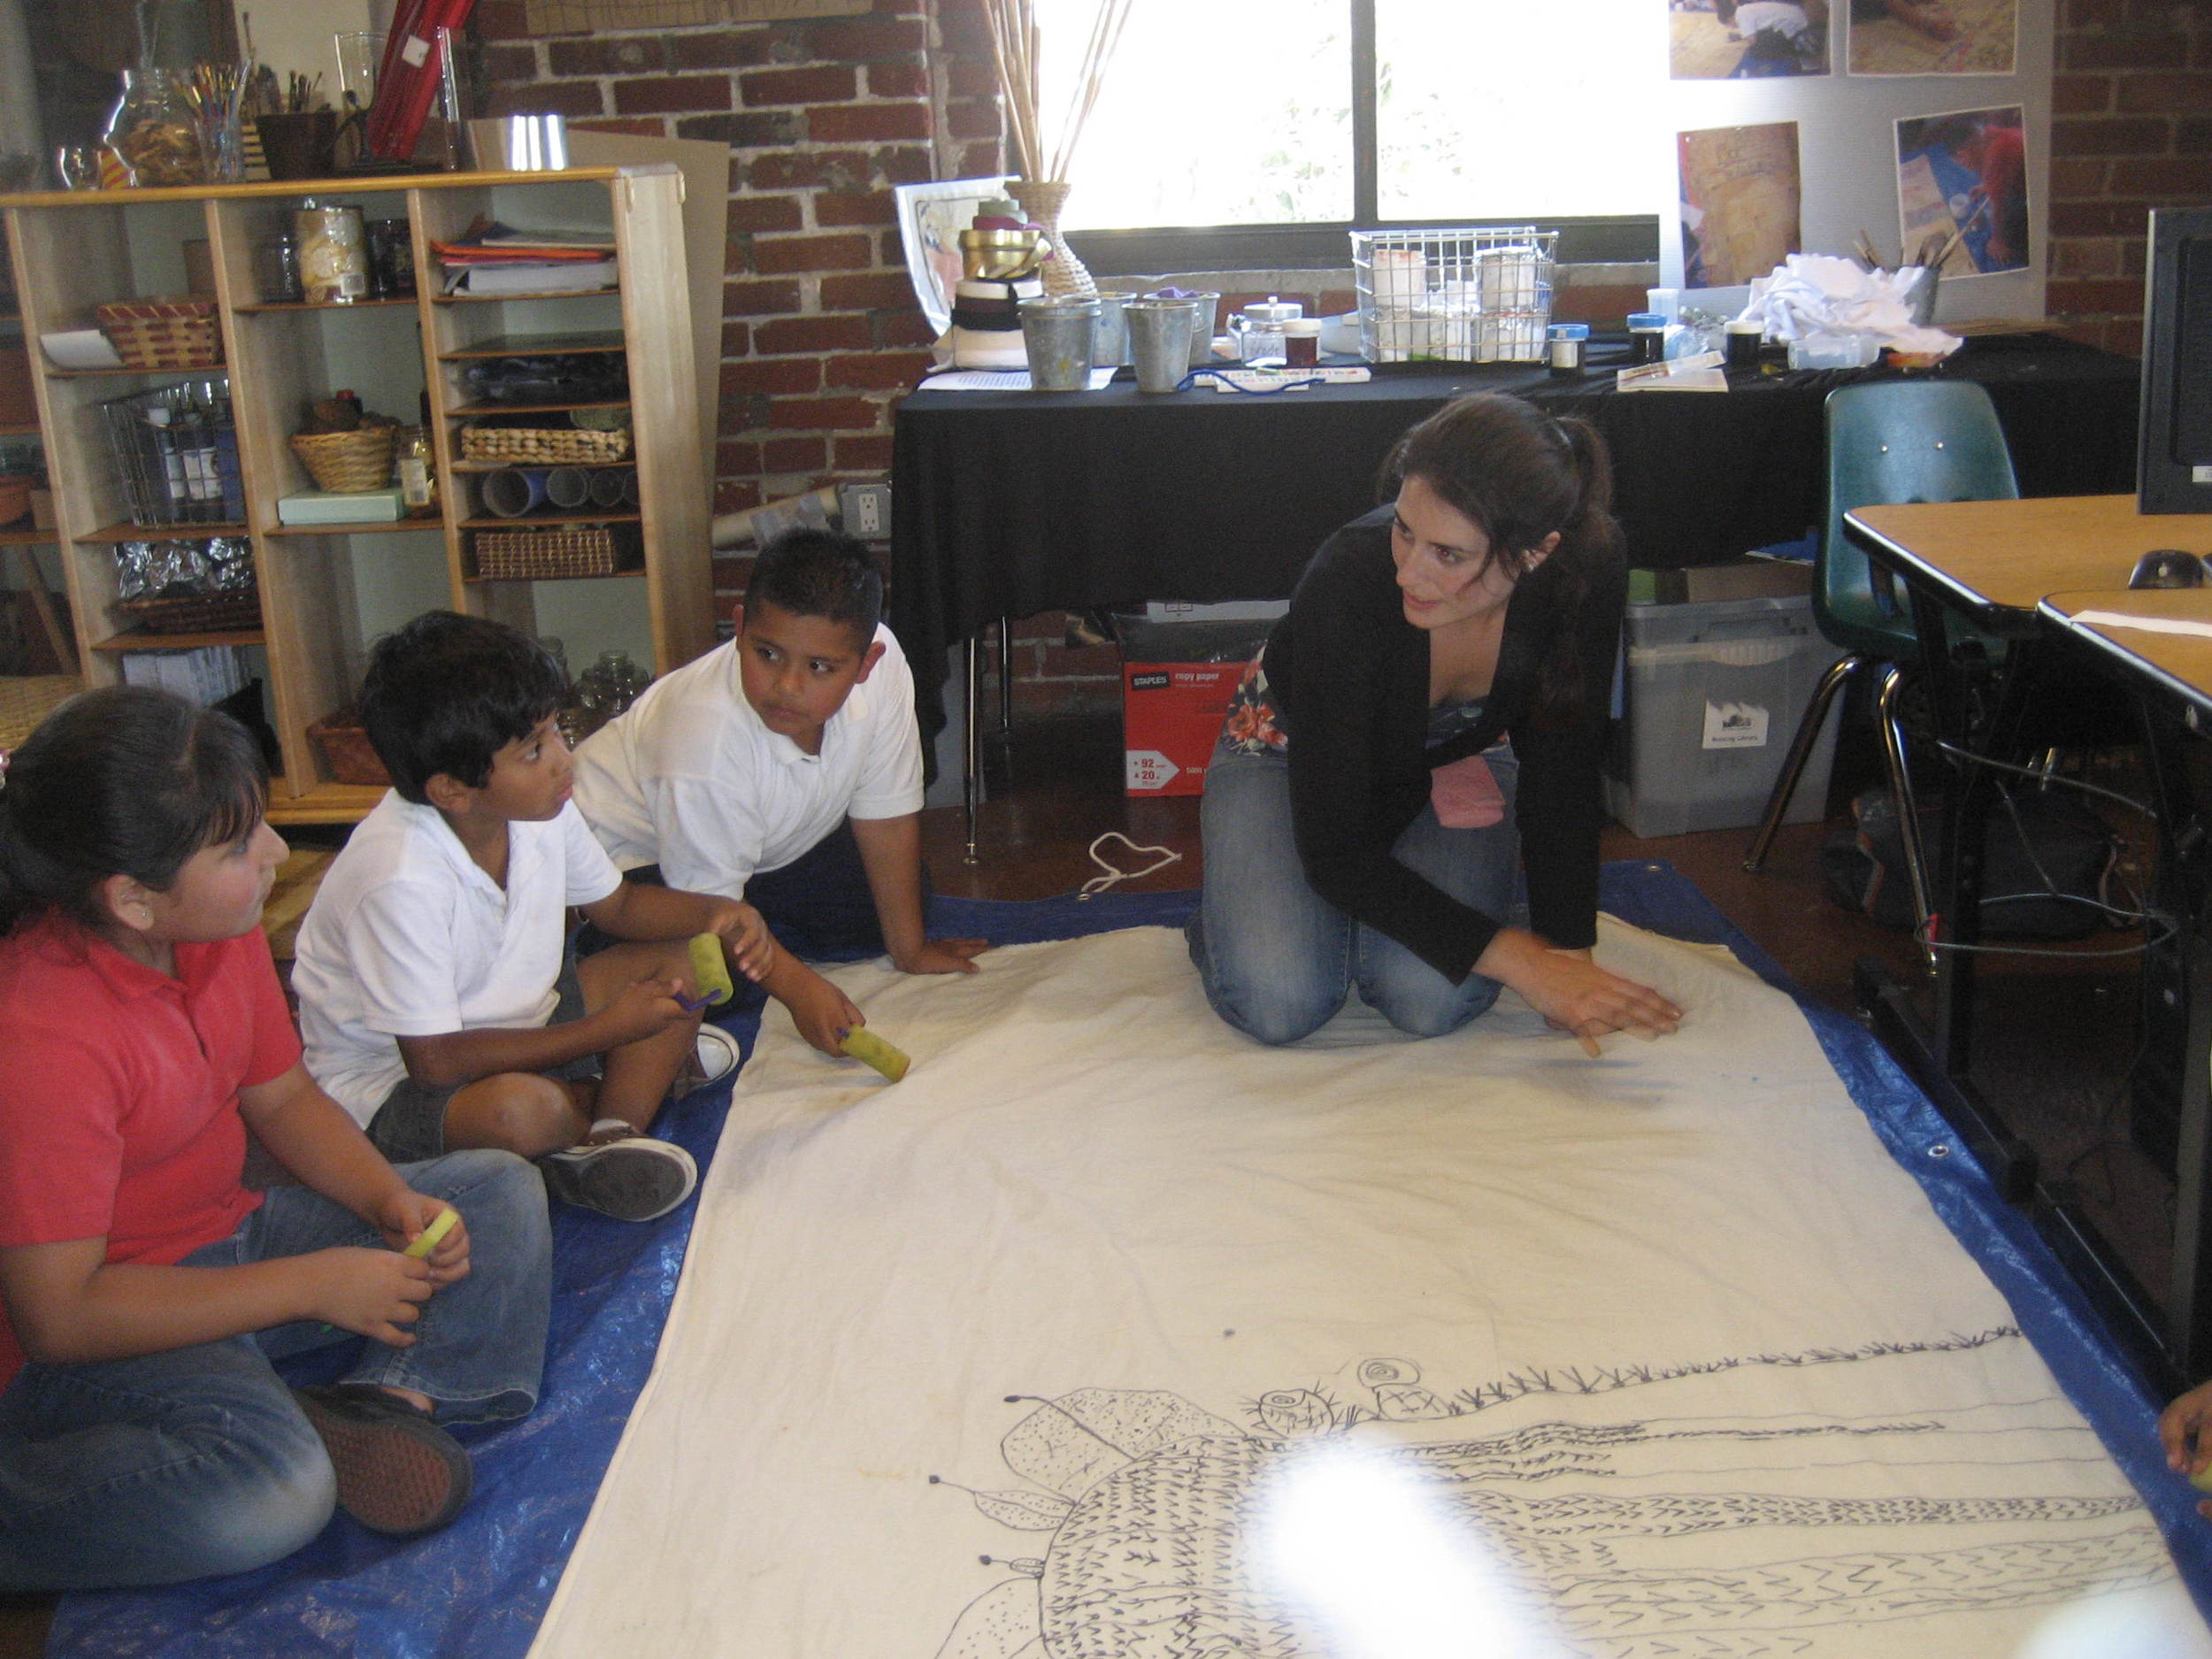 Working with a few students on a large Saguaro cactus mural.